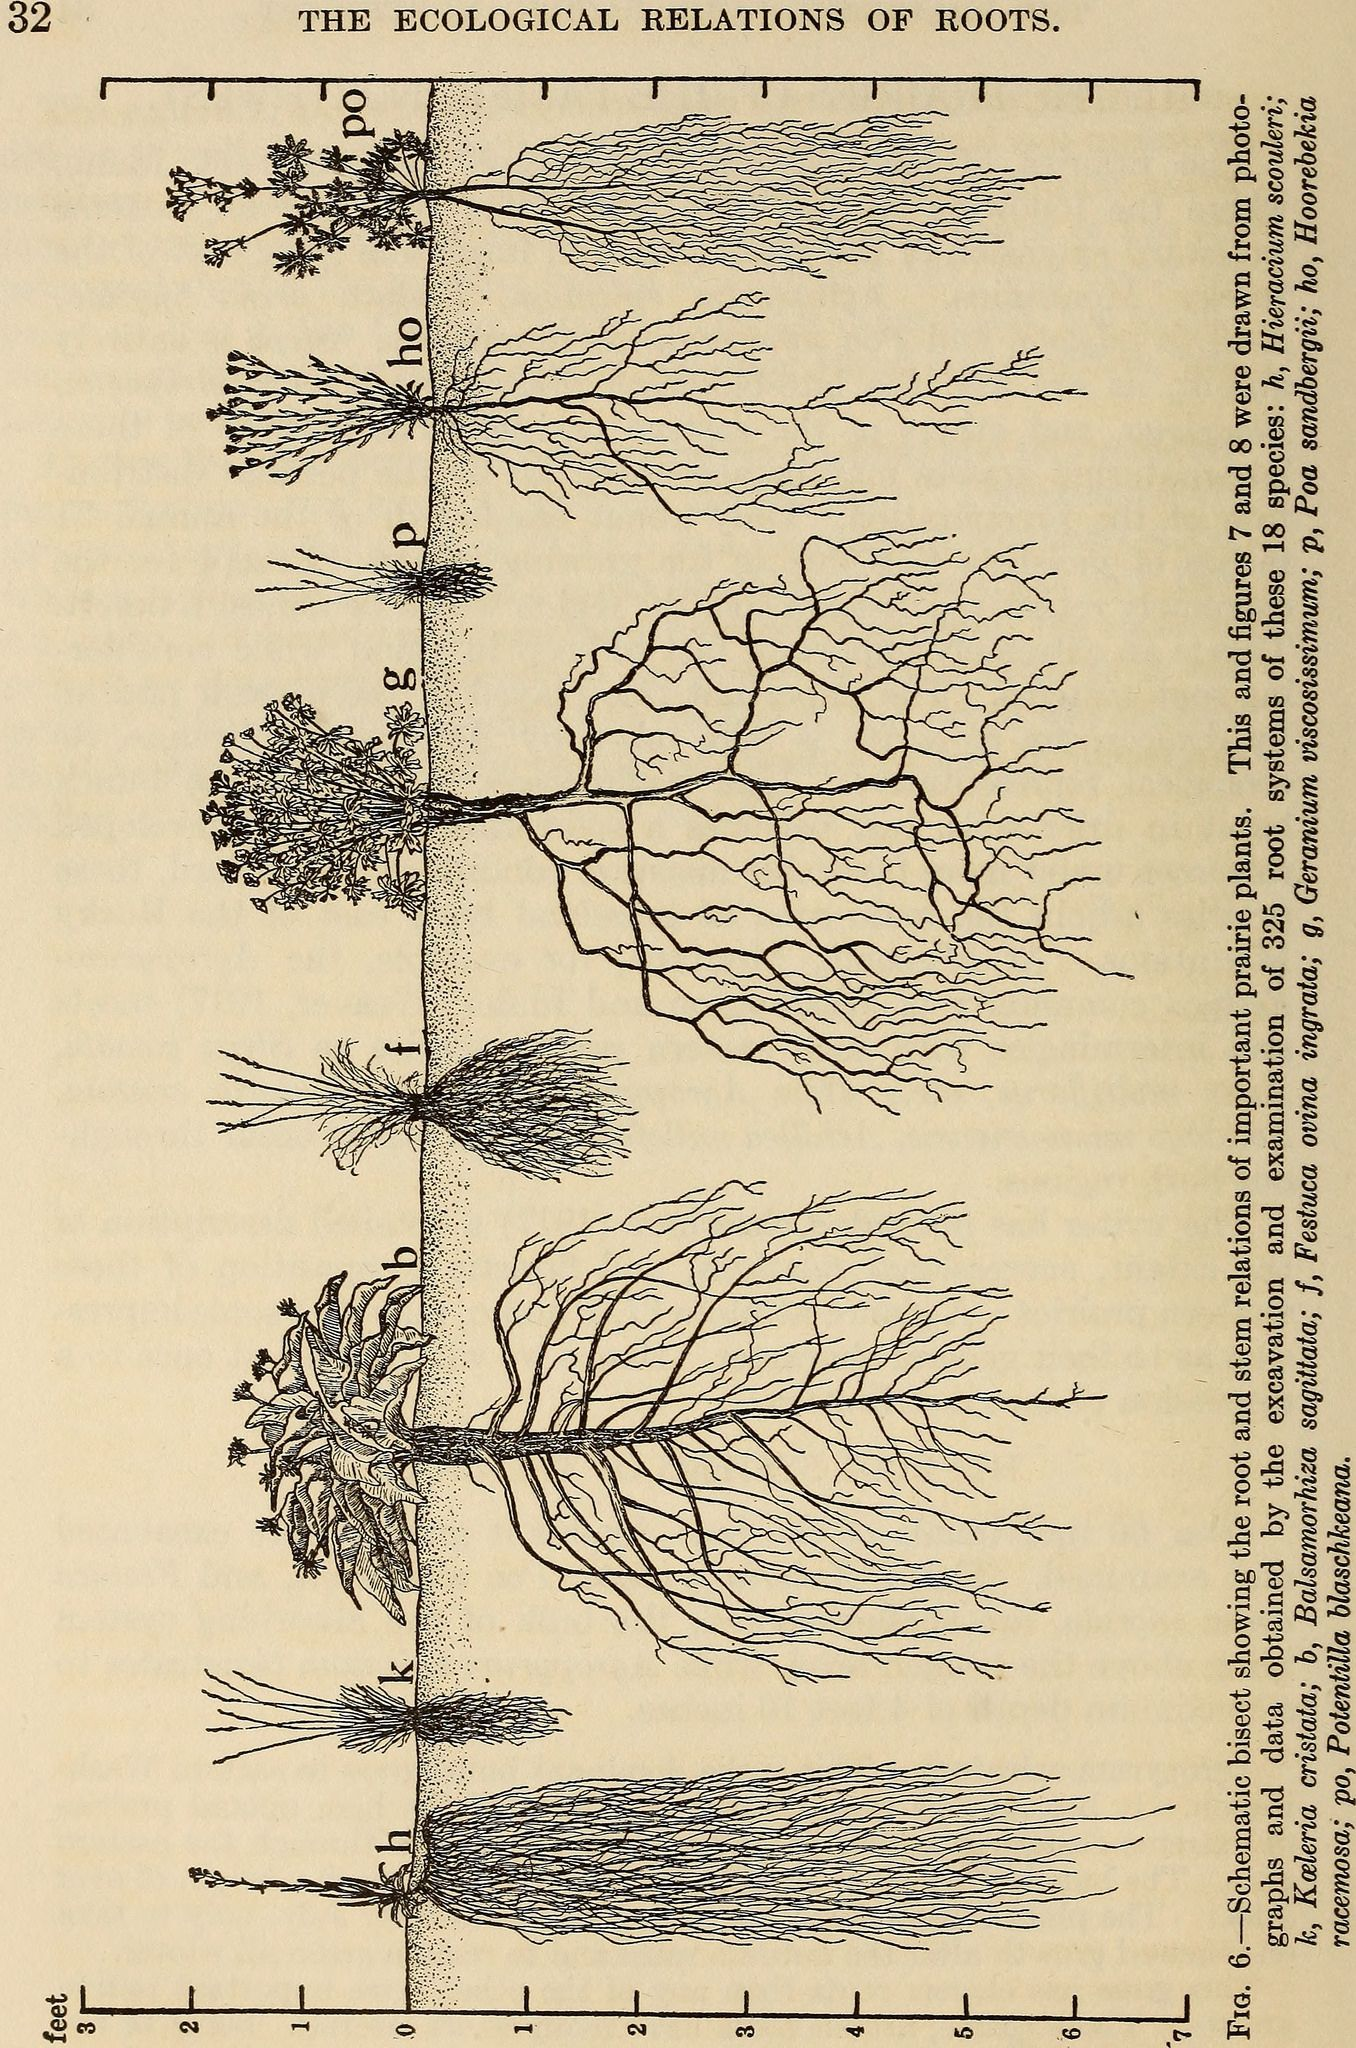 Image from page 45 of the ecological relations of roots 1919 image from page 45 of the ecological relations of roots 1919 sciox Gallery